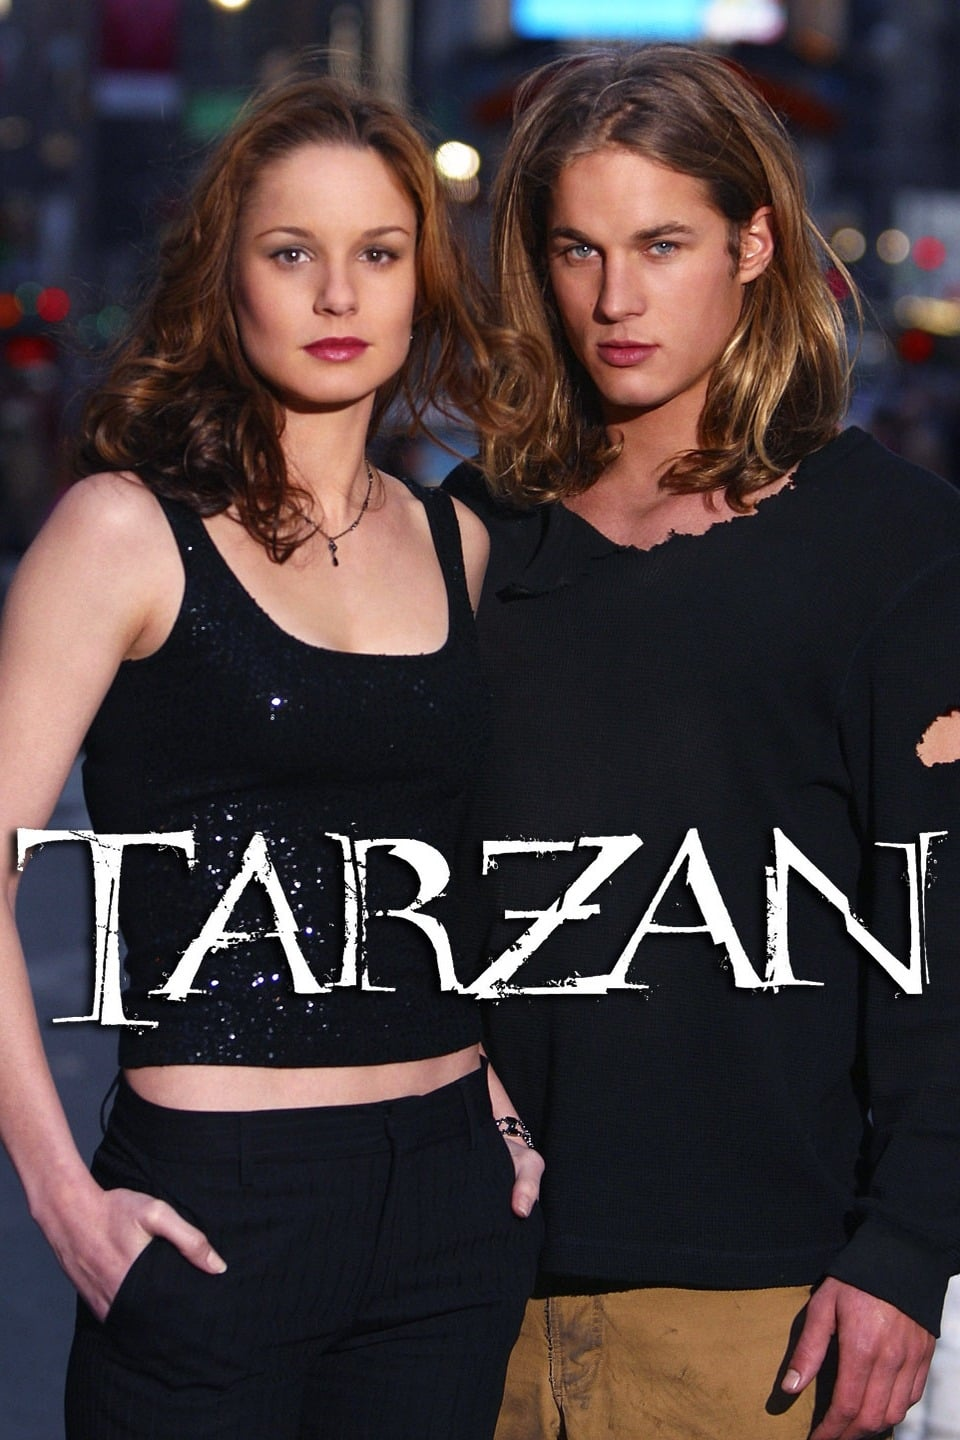 Tarzan TV Shows About Feral Child